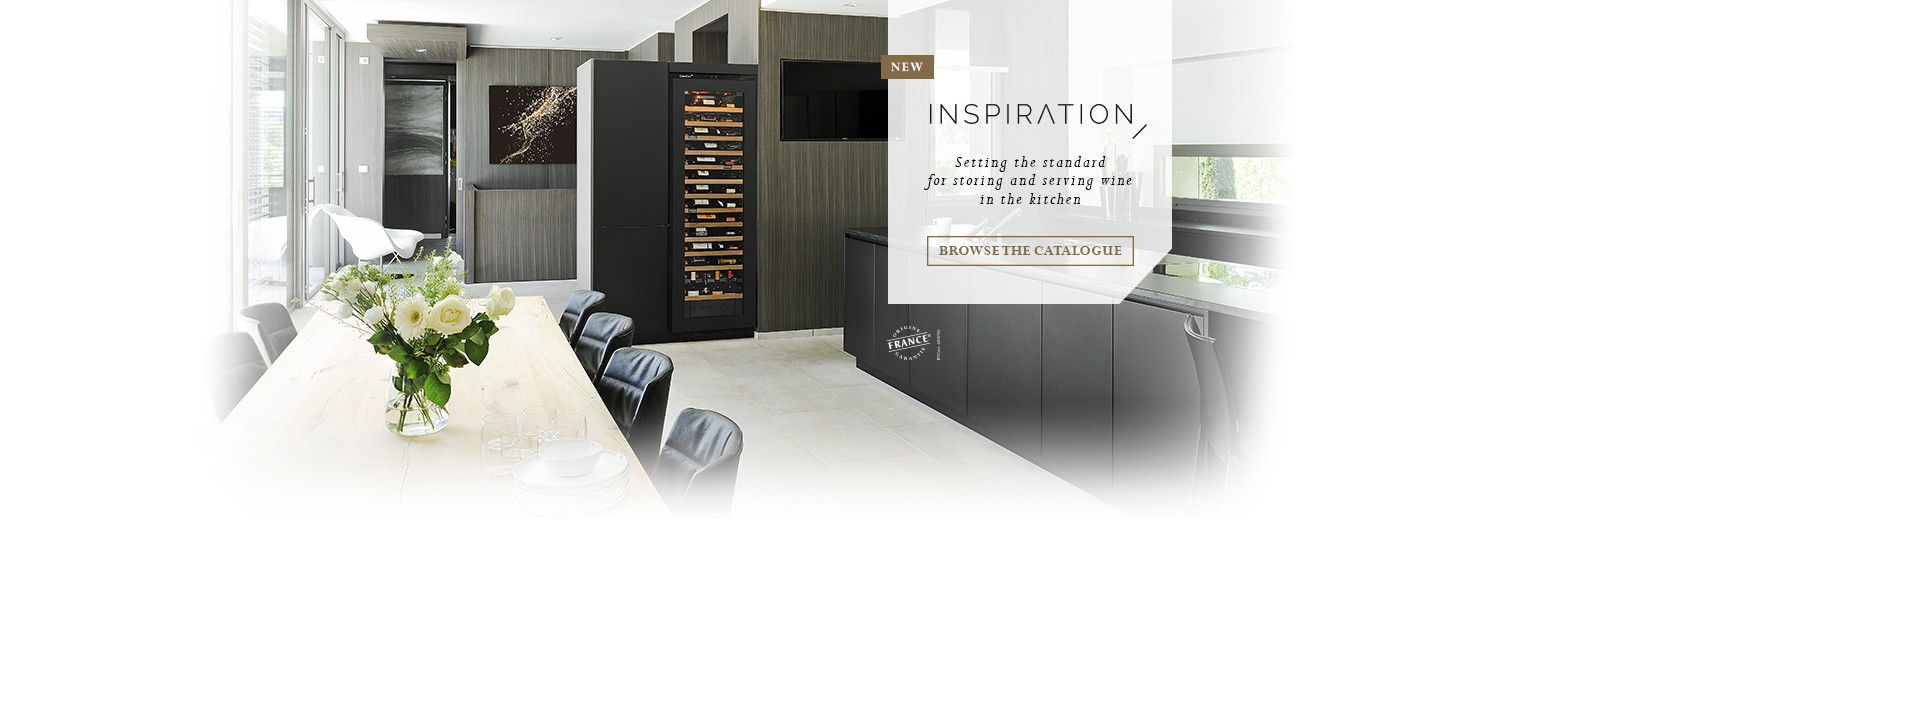 New Inspiration range - flush-fitted or built-in wine cabinets for kitchen